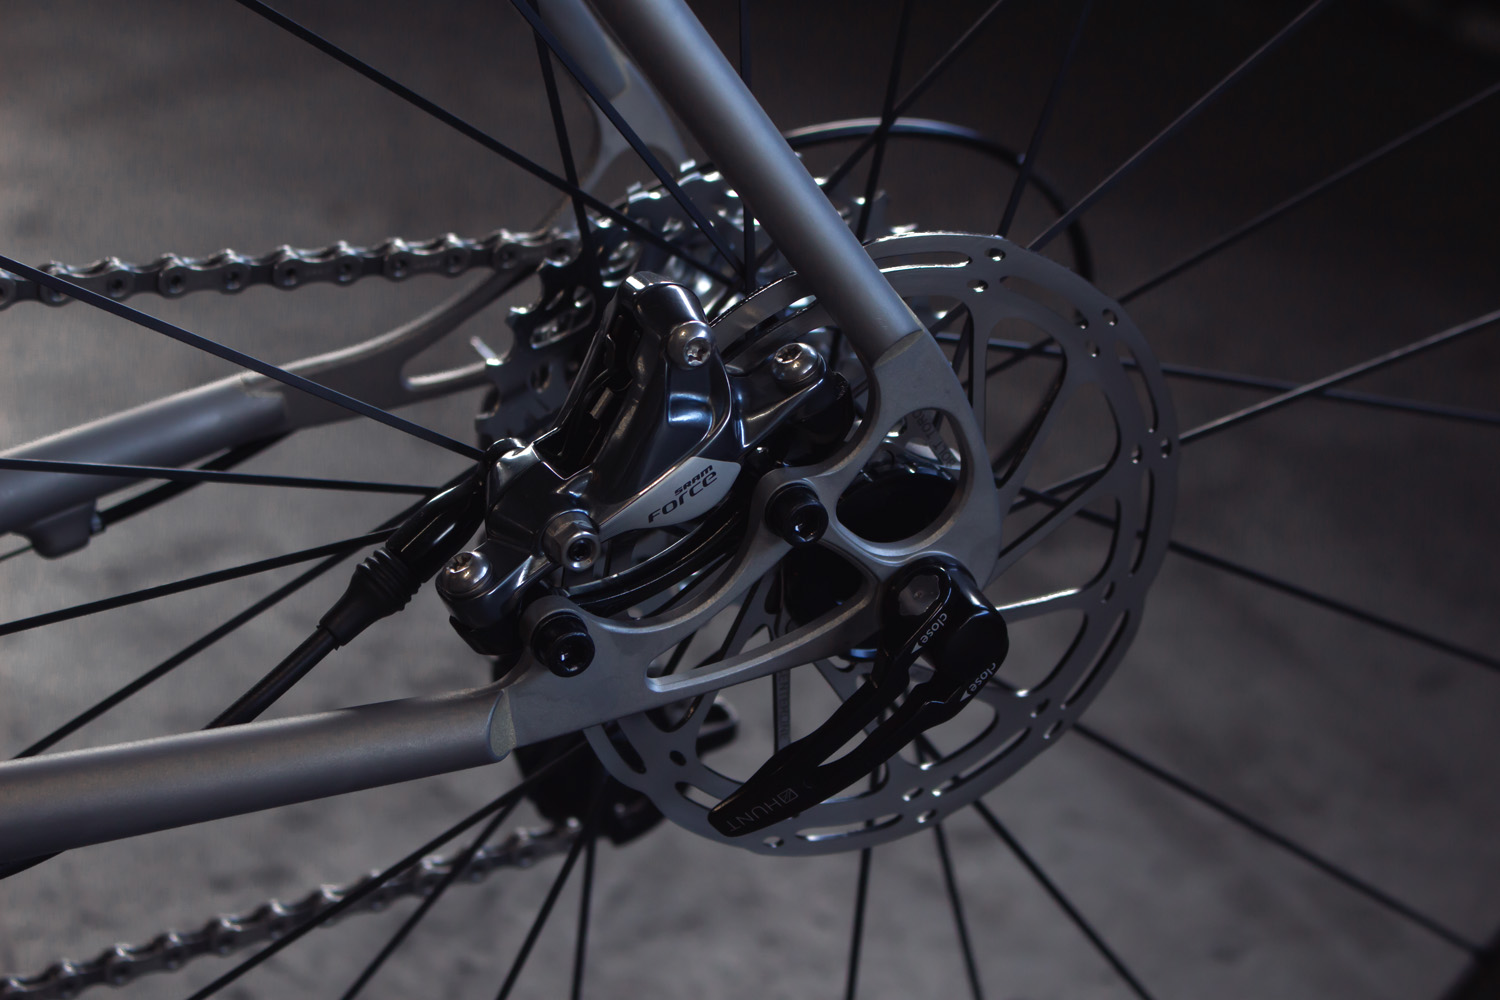 quirk_cycles_stainless_carbon_climber_road_JPEG_0009.jpg